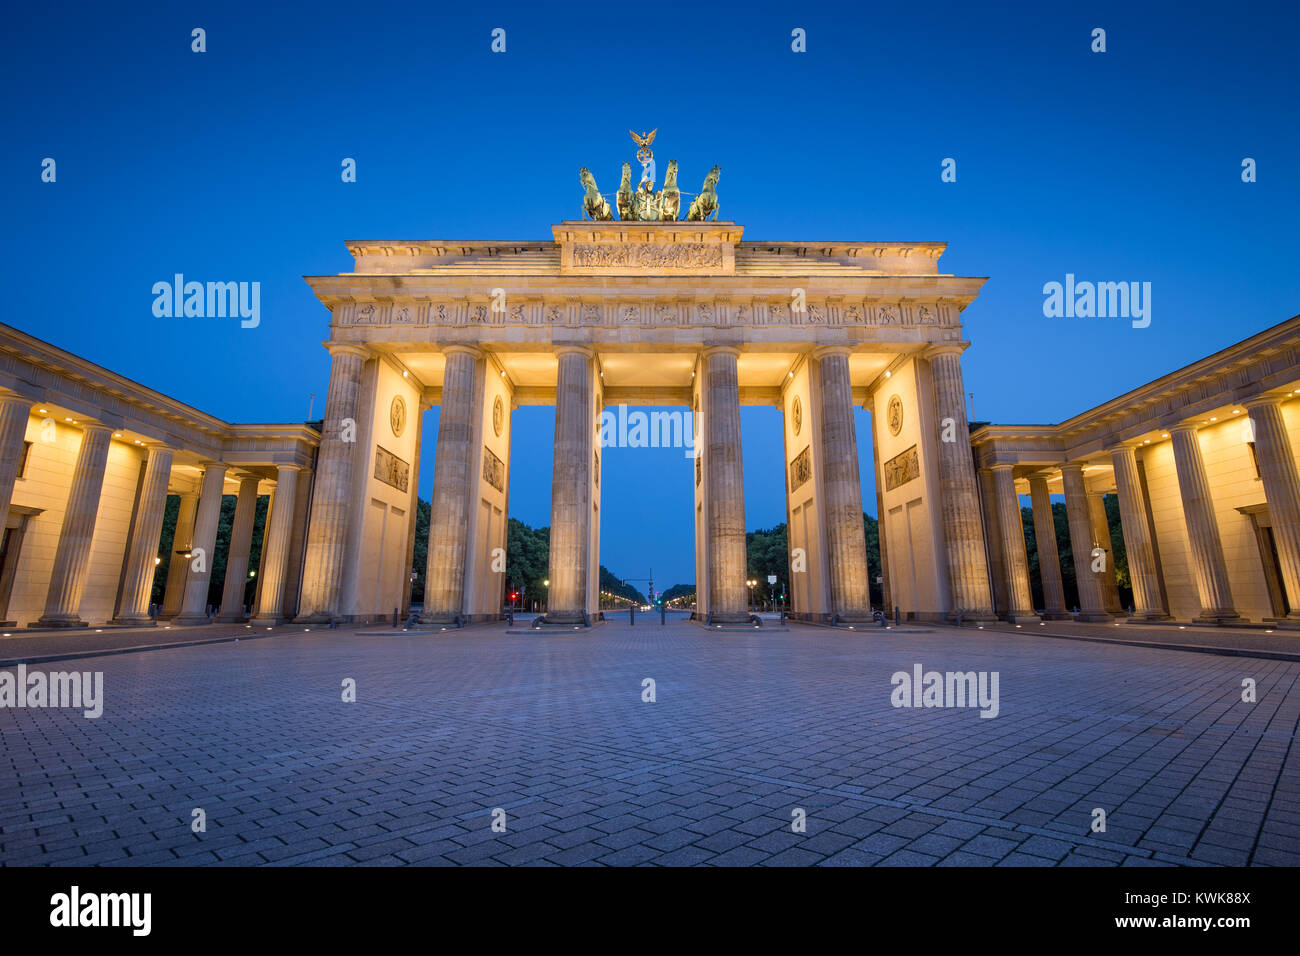 Classic view of famous Brandenburger Tor (Brandenburg Gate), one of the best-known landmarks and national symbols - Stock Image